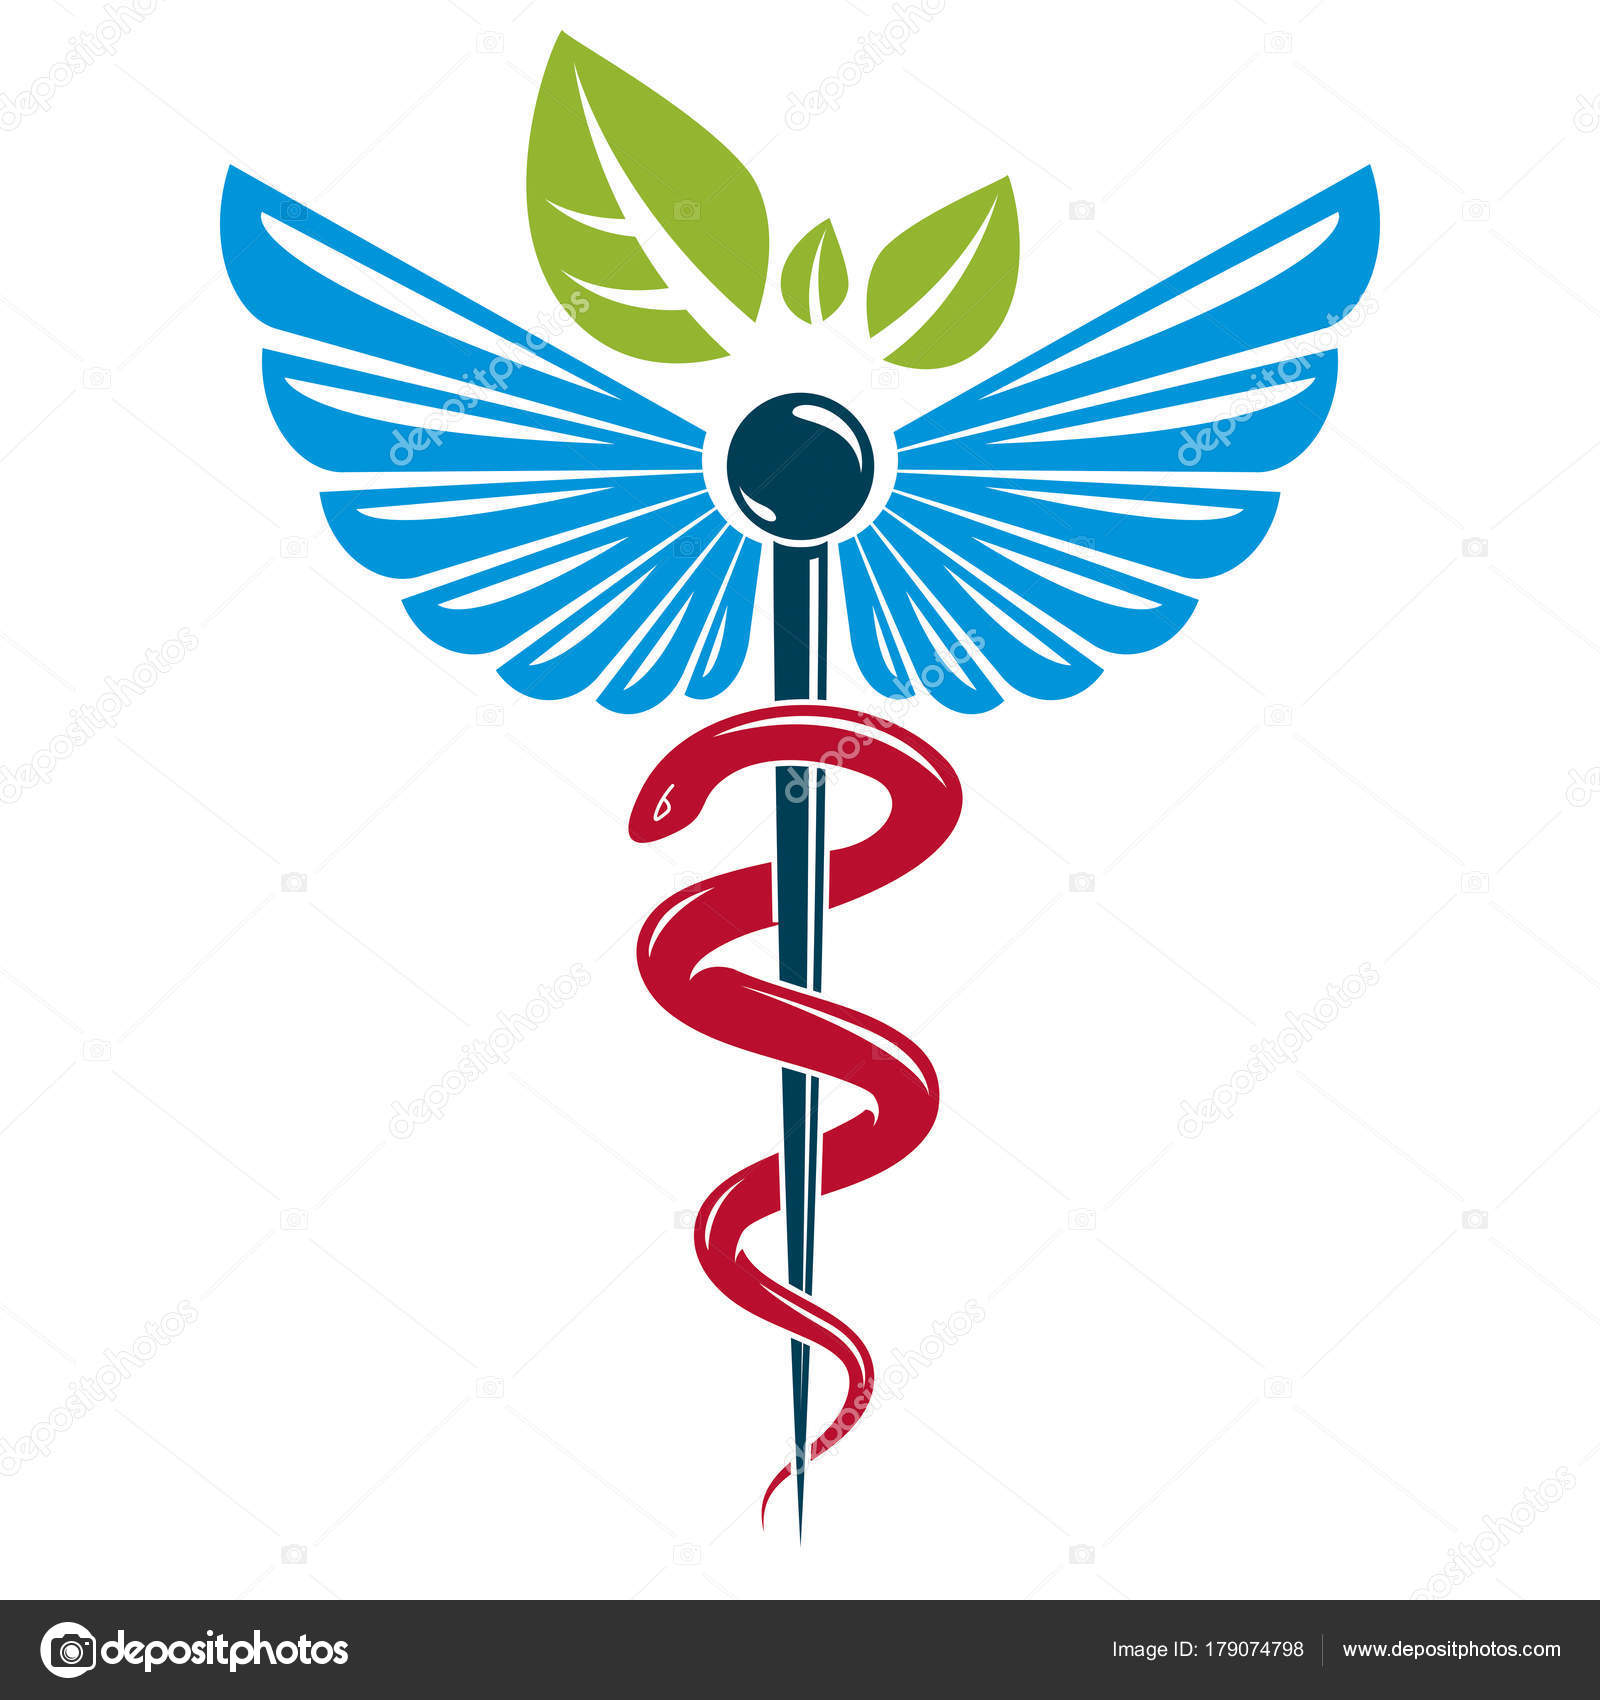 Caduceus Symbol Composed Poisonous Snakes Bird Wings Healthcare